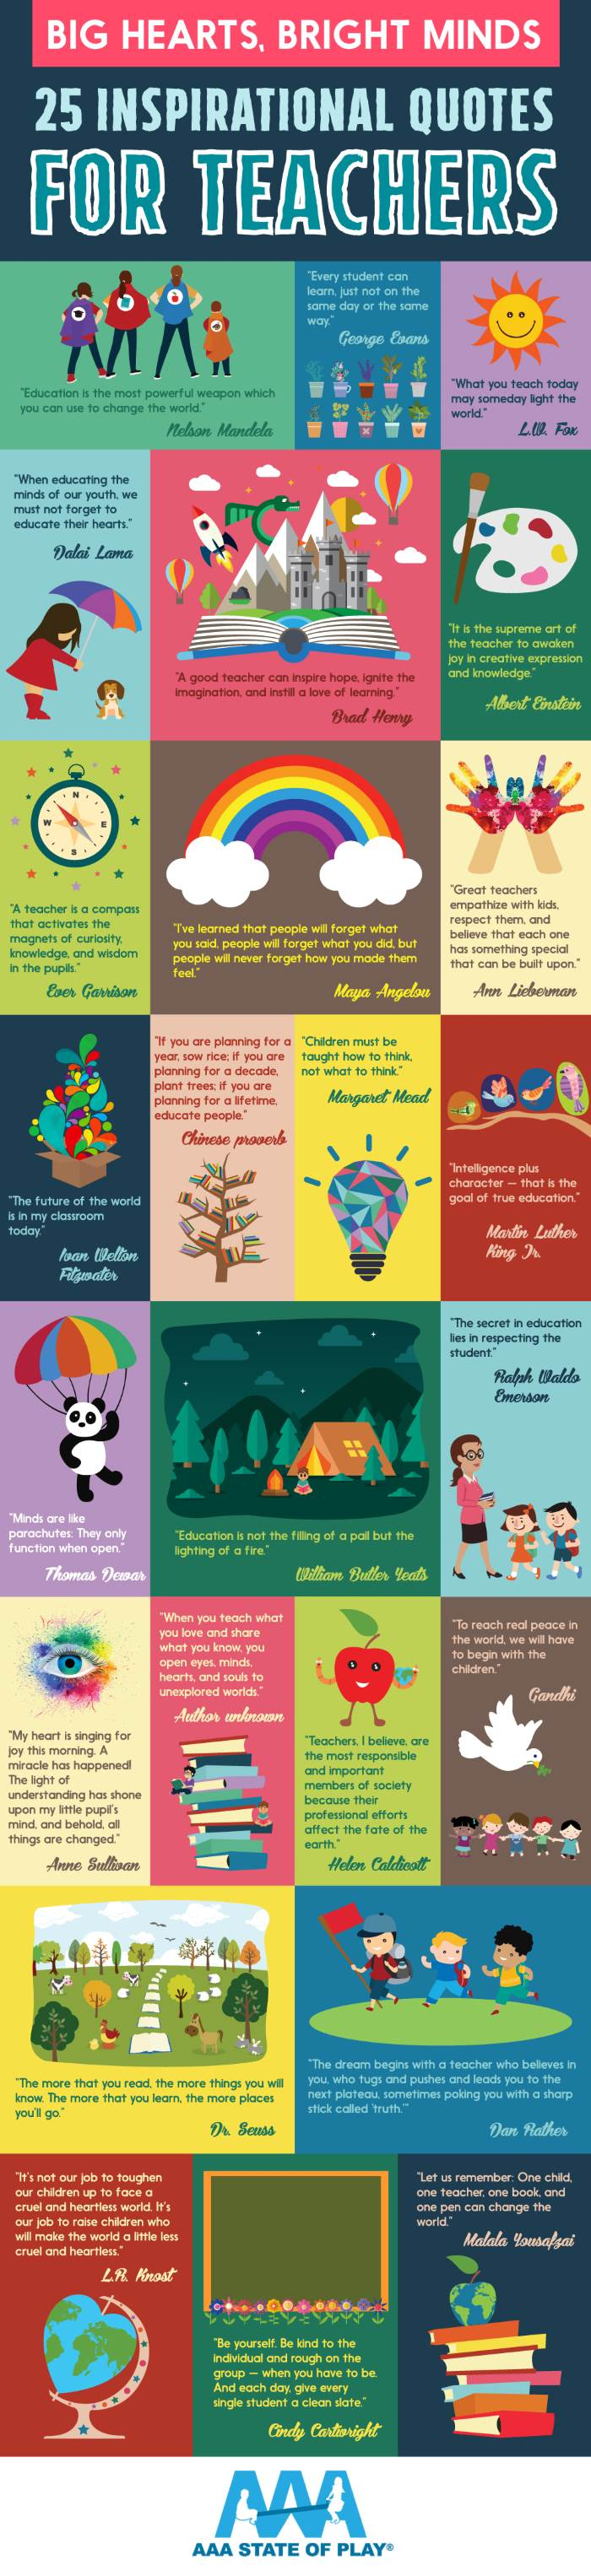 The 25 Inspirational Quotes for Teachers Awesome Teachers' Day Gift Ideas with Thank You Cards